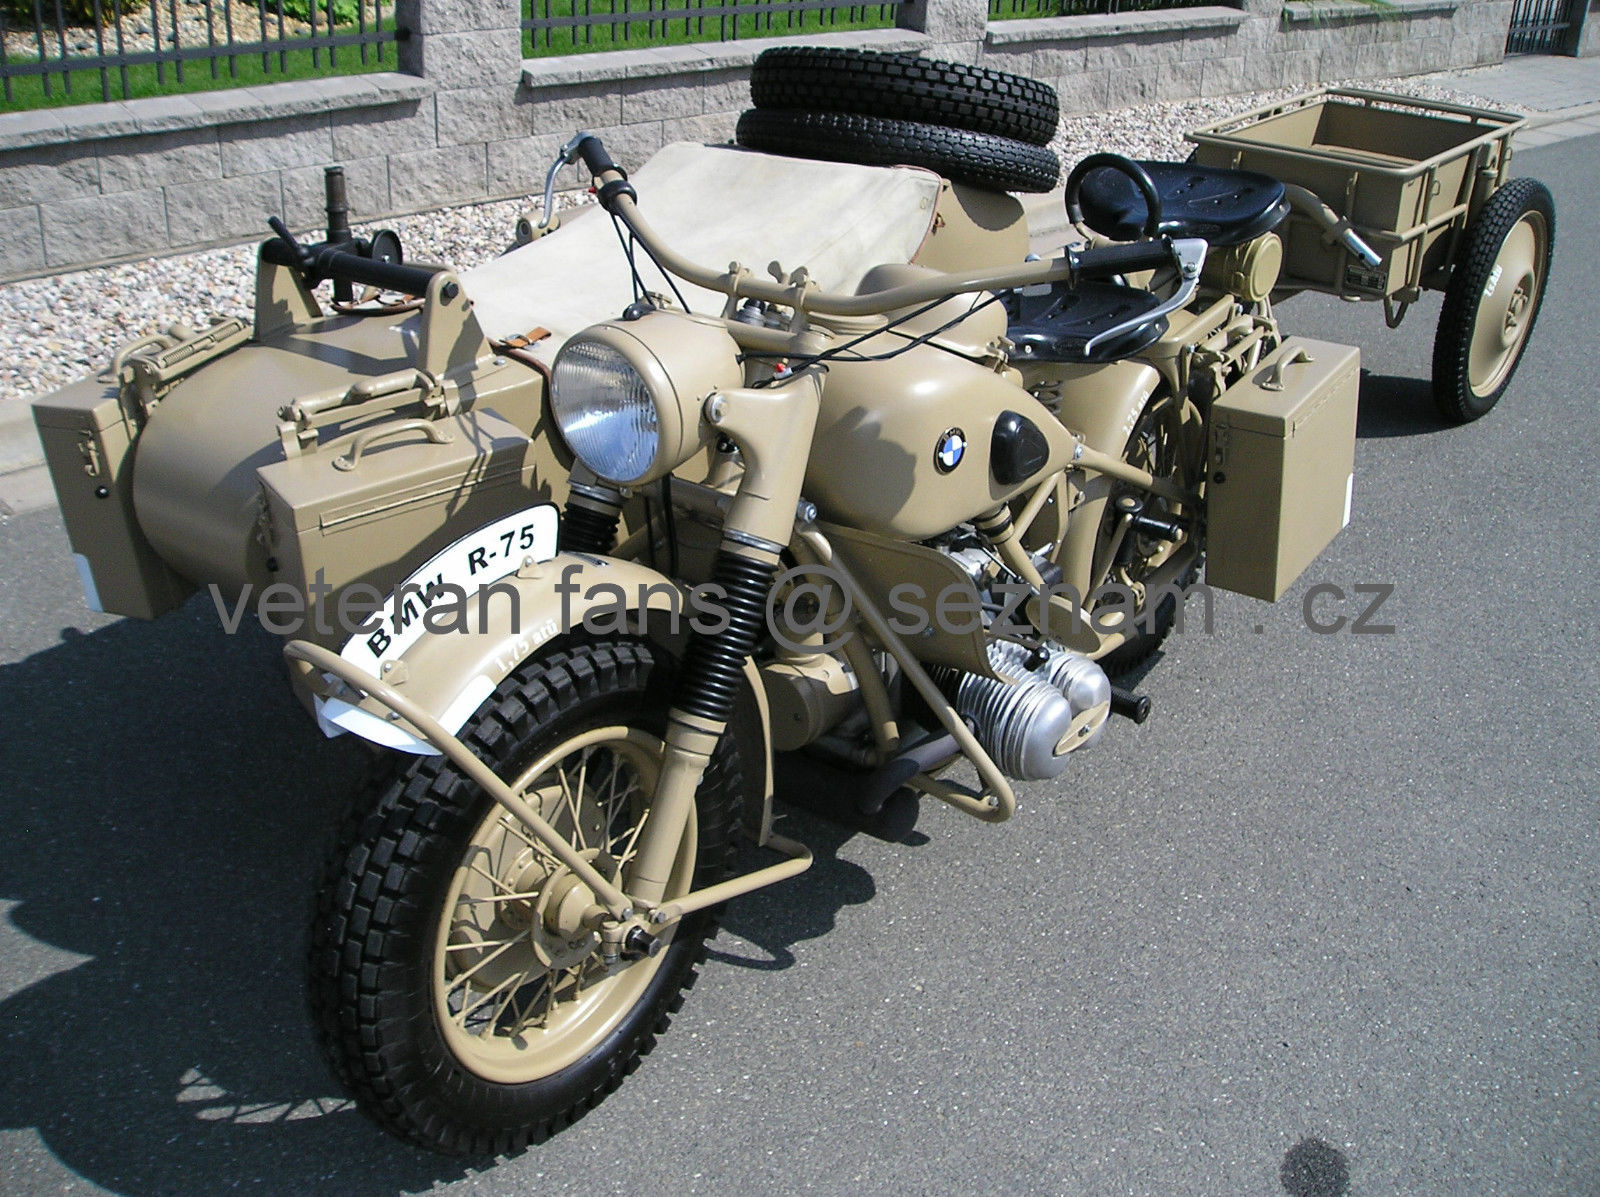 wehrmacht s motorrad. Black Bedroom Furniture Sets. Home Design Ideas